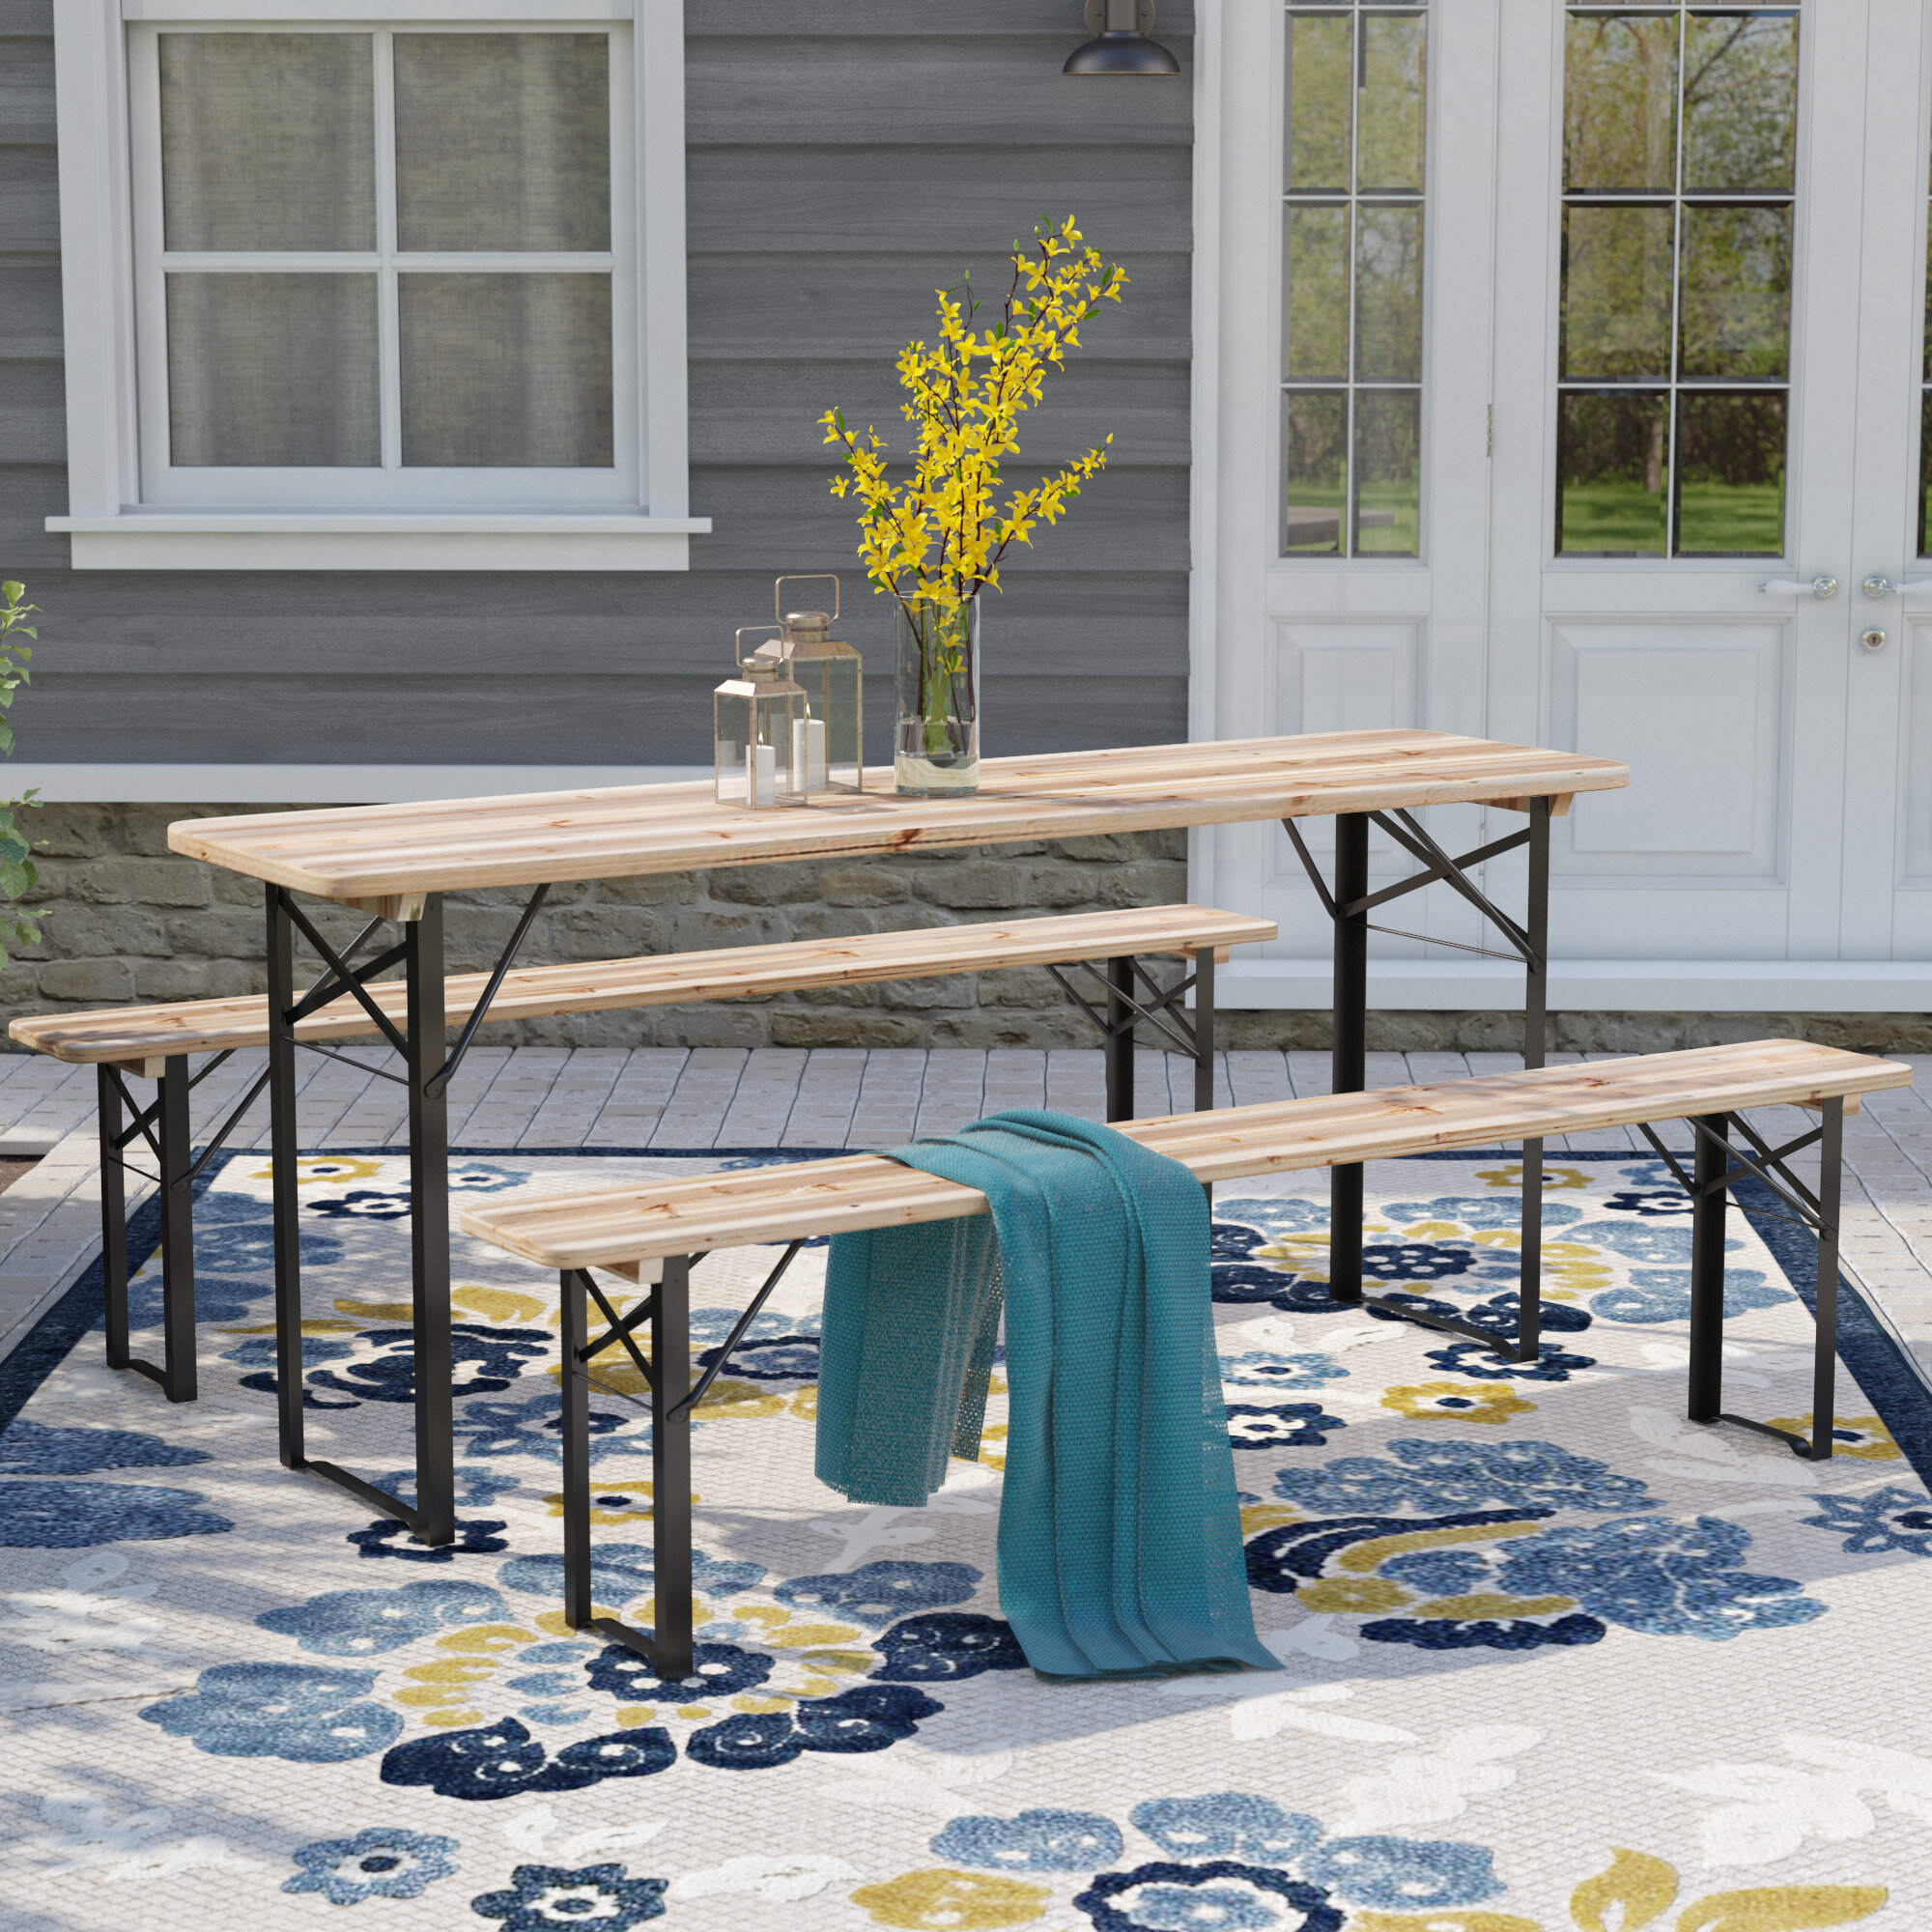 Andover Mills Baumgarten 3 Piece Outdoor Folding Picnic Table Set u0026 Reviews | Wayfair & Andover Mills Baumgarten 3 Piece Outdoor Folding Picnic Table Set ...